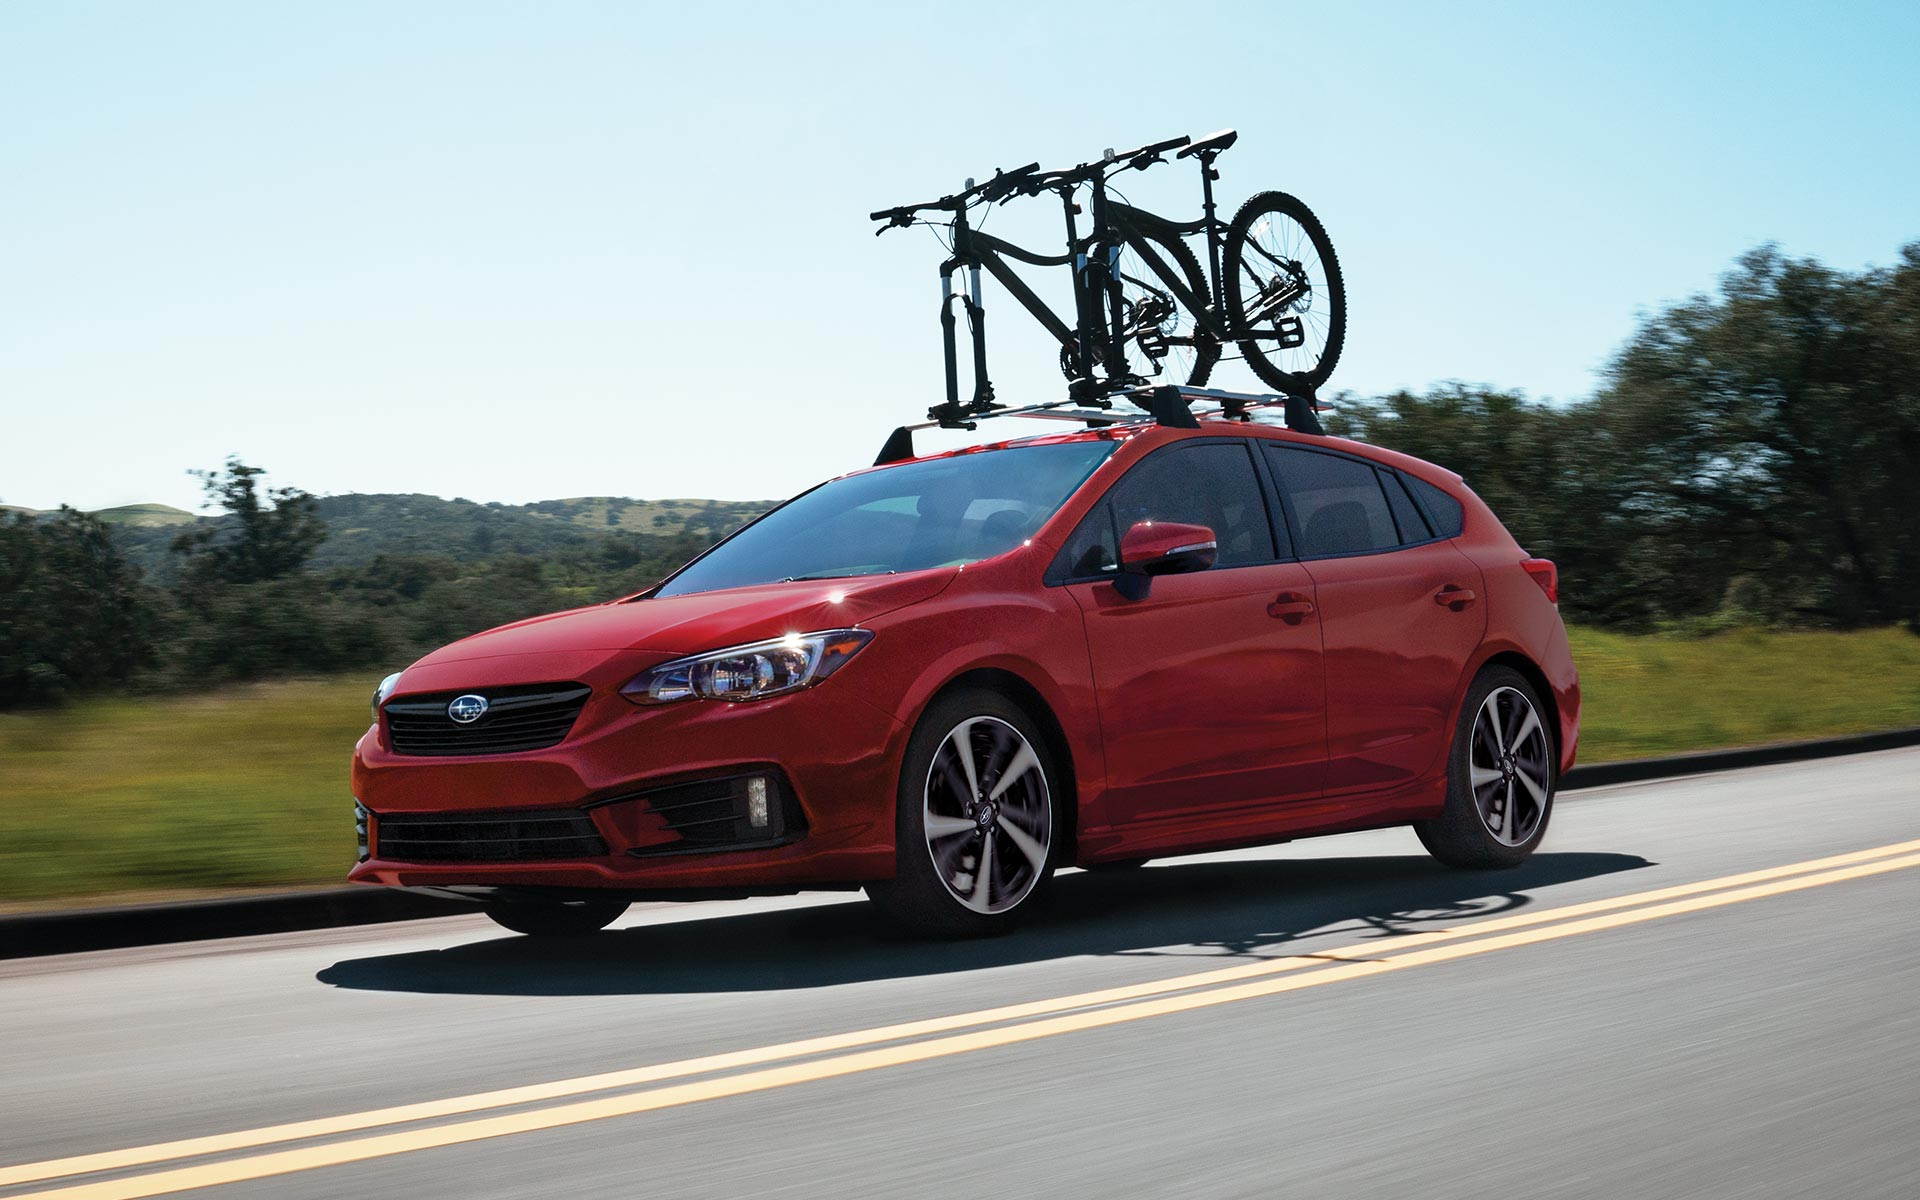 A 2020 Impreza sedan equipped with a bike rack driving down a highway.